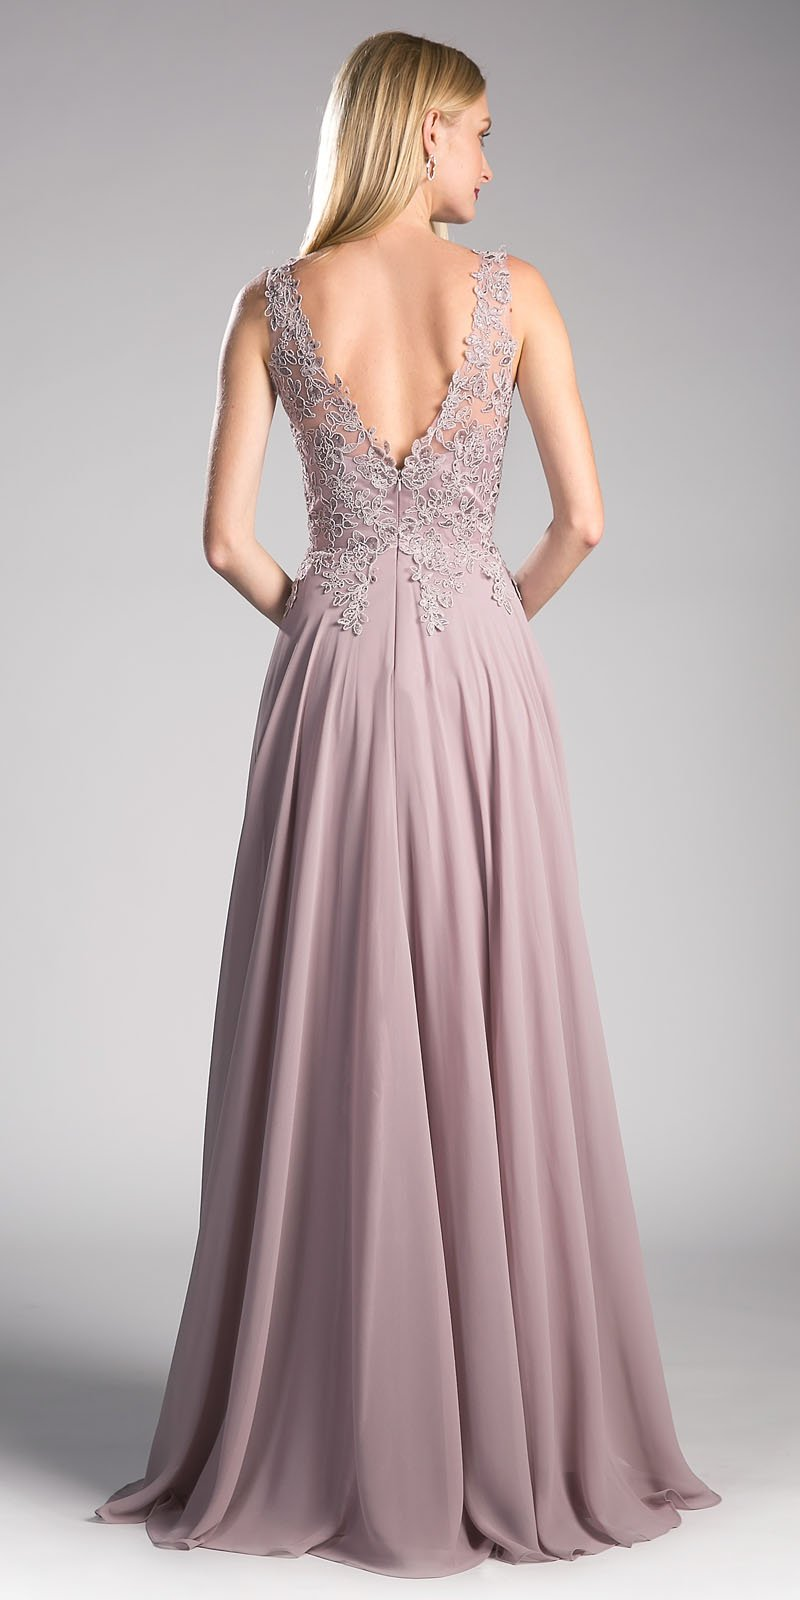 Upscale Floor Length Bridesmaid Dress in 6 colors